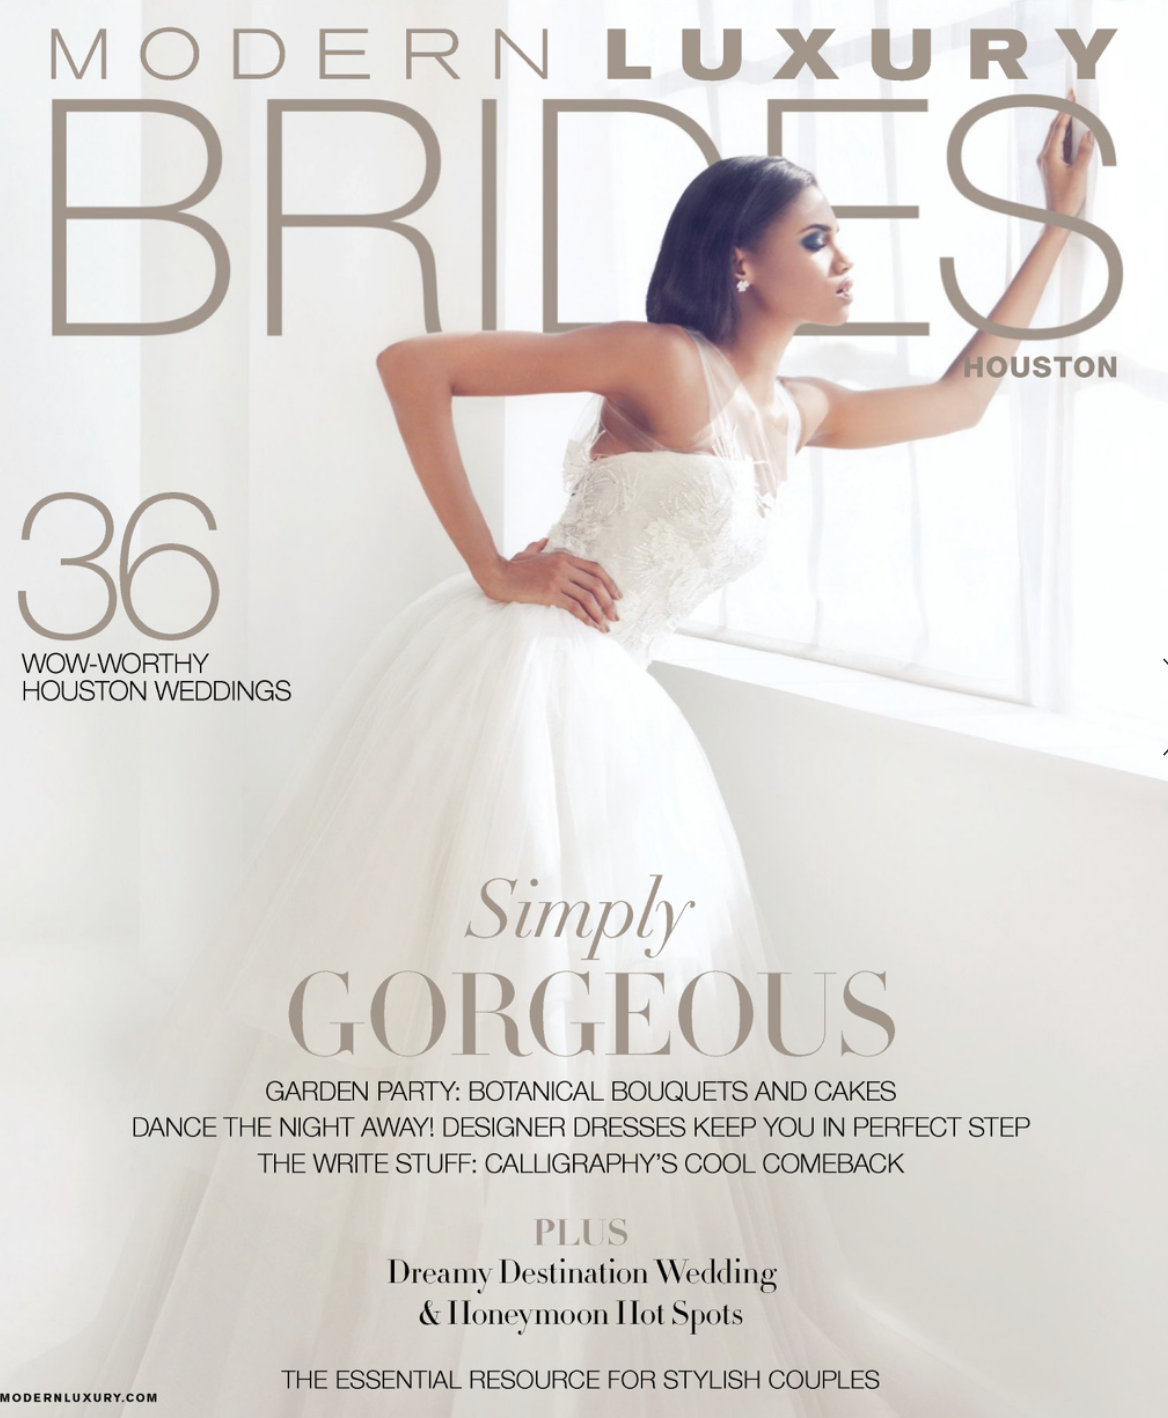 The cover of the December 2014 issue of Houston Brides Magazine